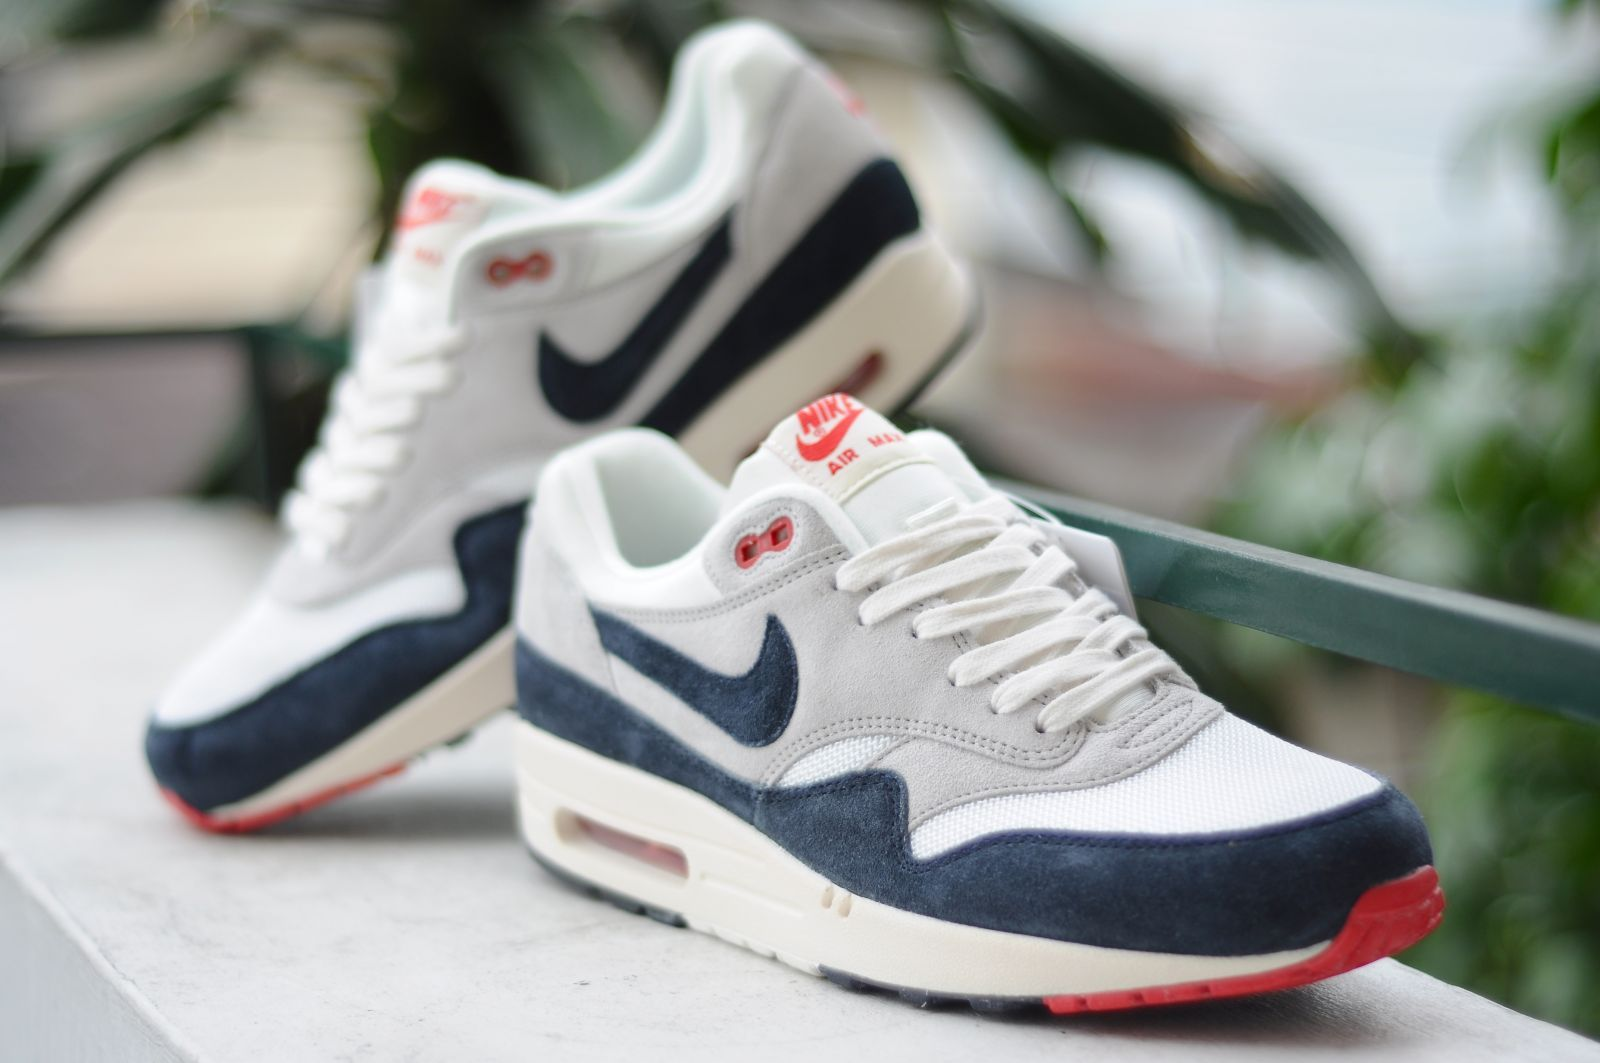 timeless design 45116 9d698 Nike Air Max 1 OG VNTG - White Navy-Red    airmax1  nike  trainers  sneakers